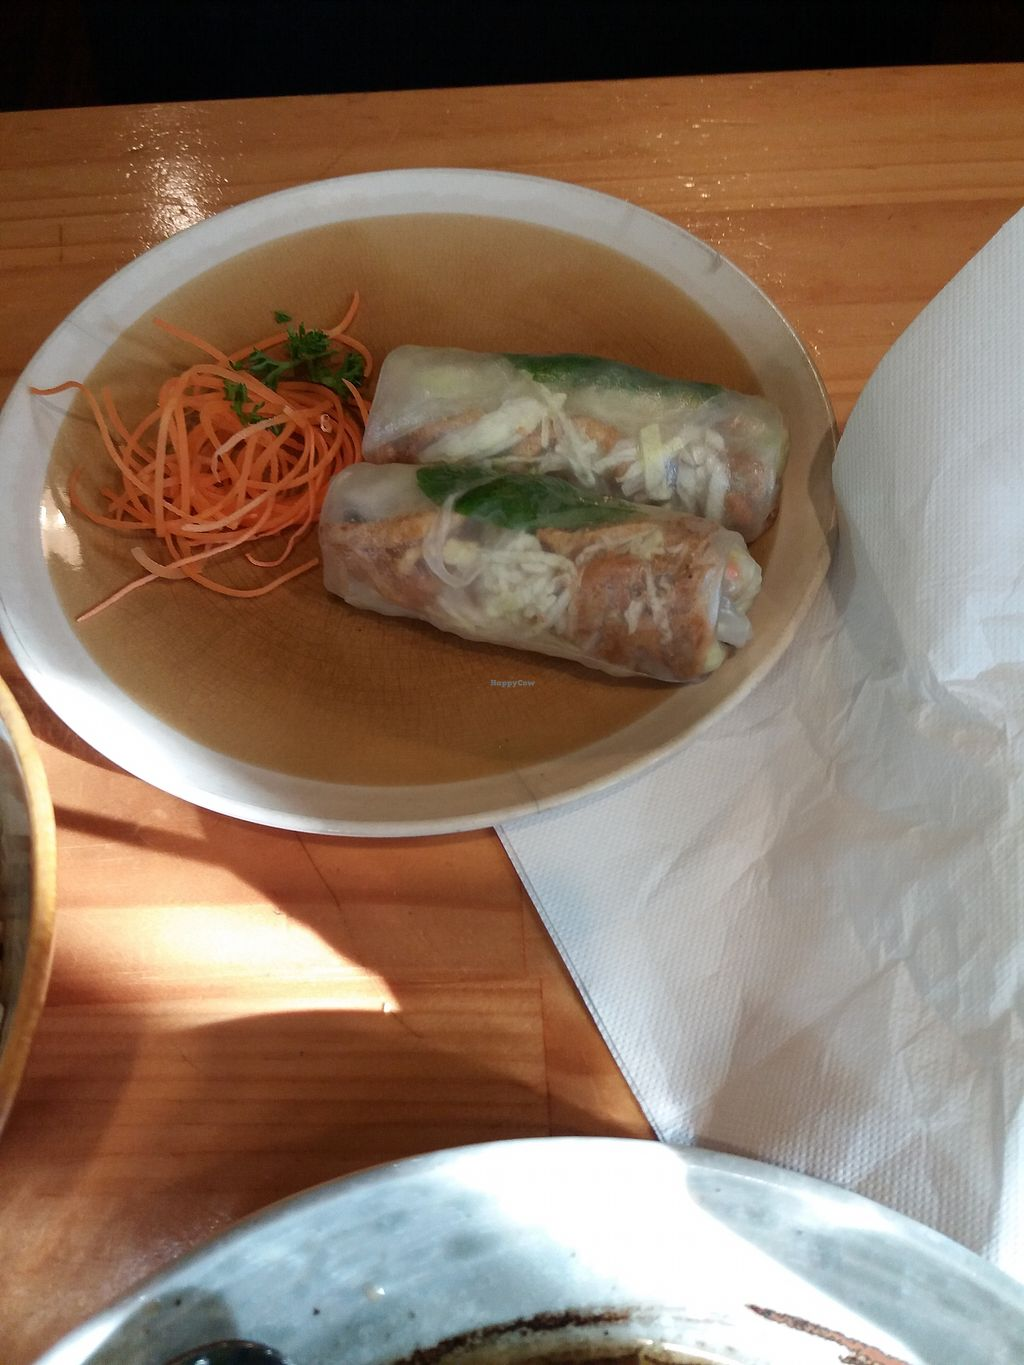 """Photo of Golden Lotus Vegan  by <a href=""""/members/profile/veganvirtues"""">veganvirtues</a> <br/>Spring rolls <br/> July 7, 2017  - <a href='/contact/abuse/image/60395/277368'>Report</a>"""